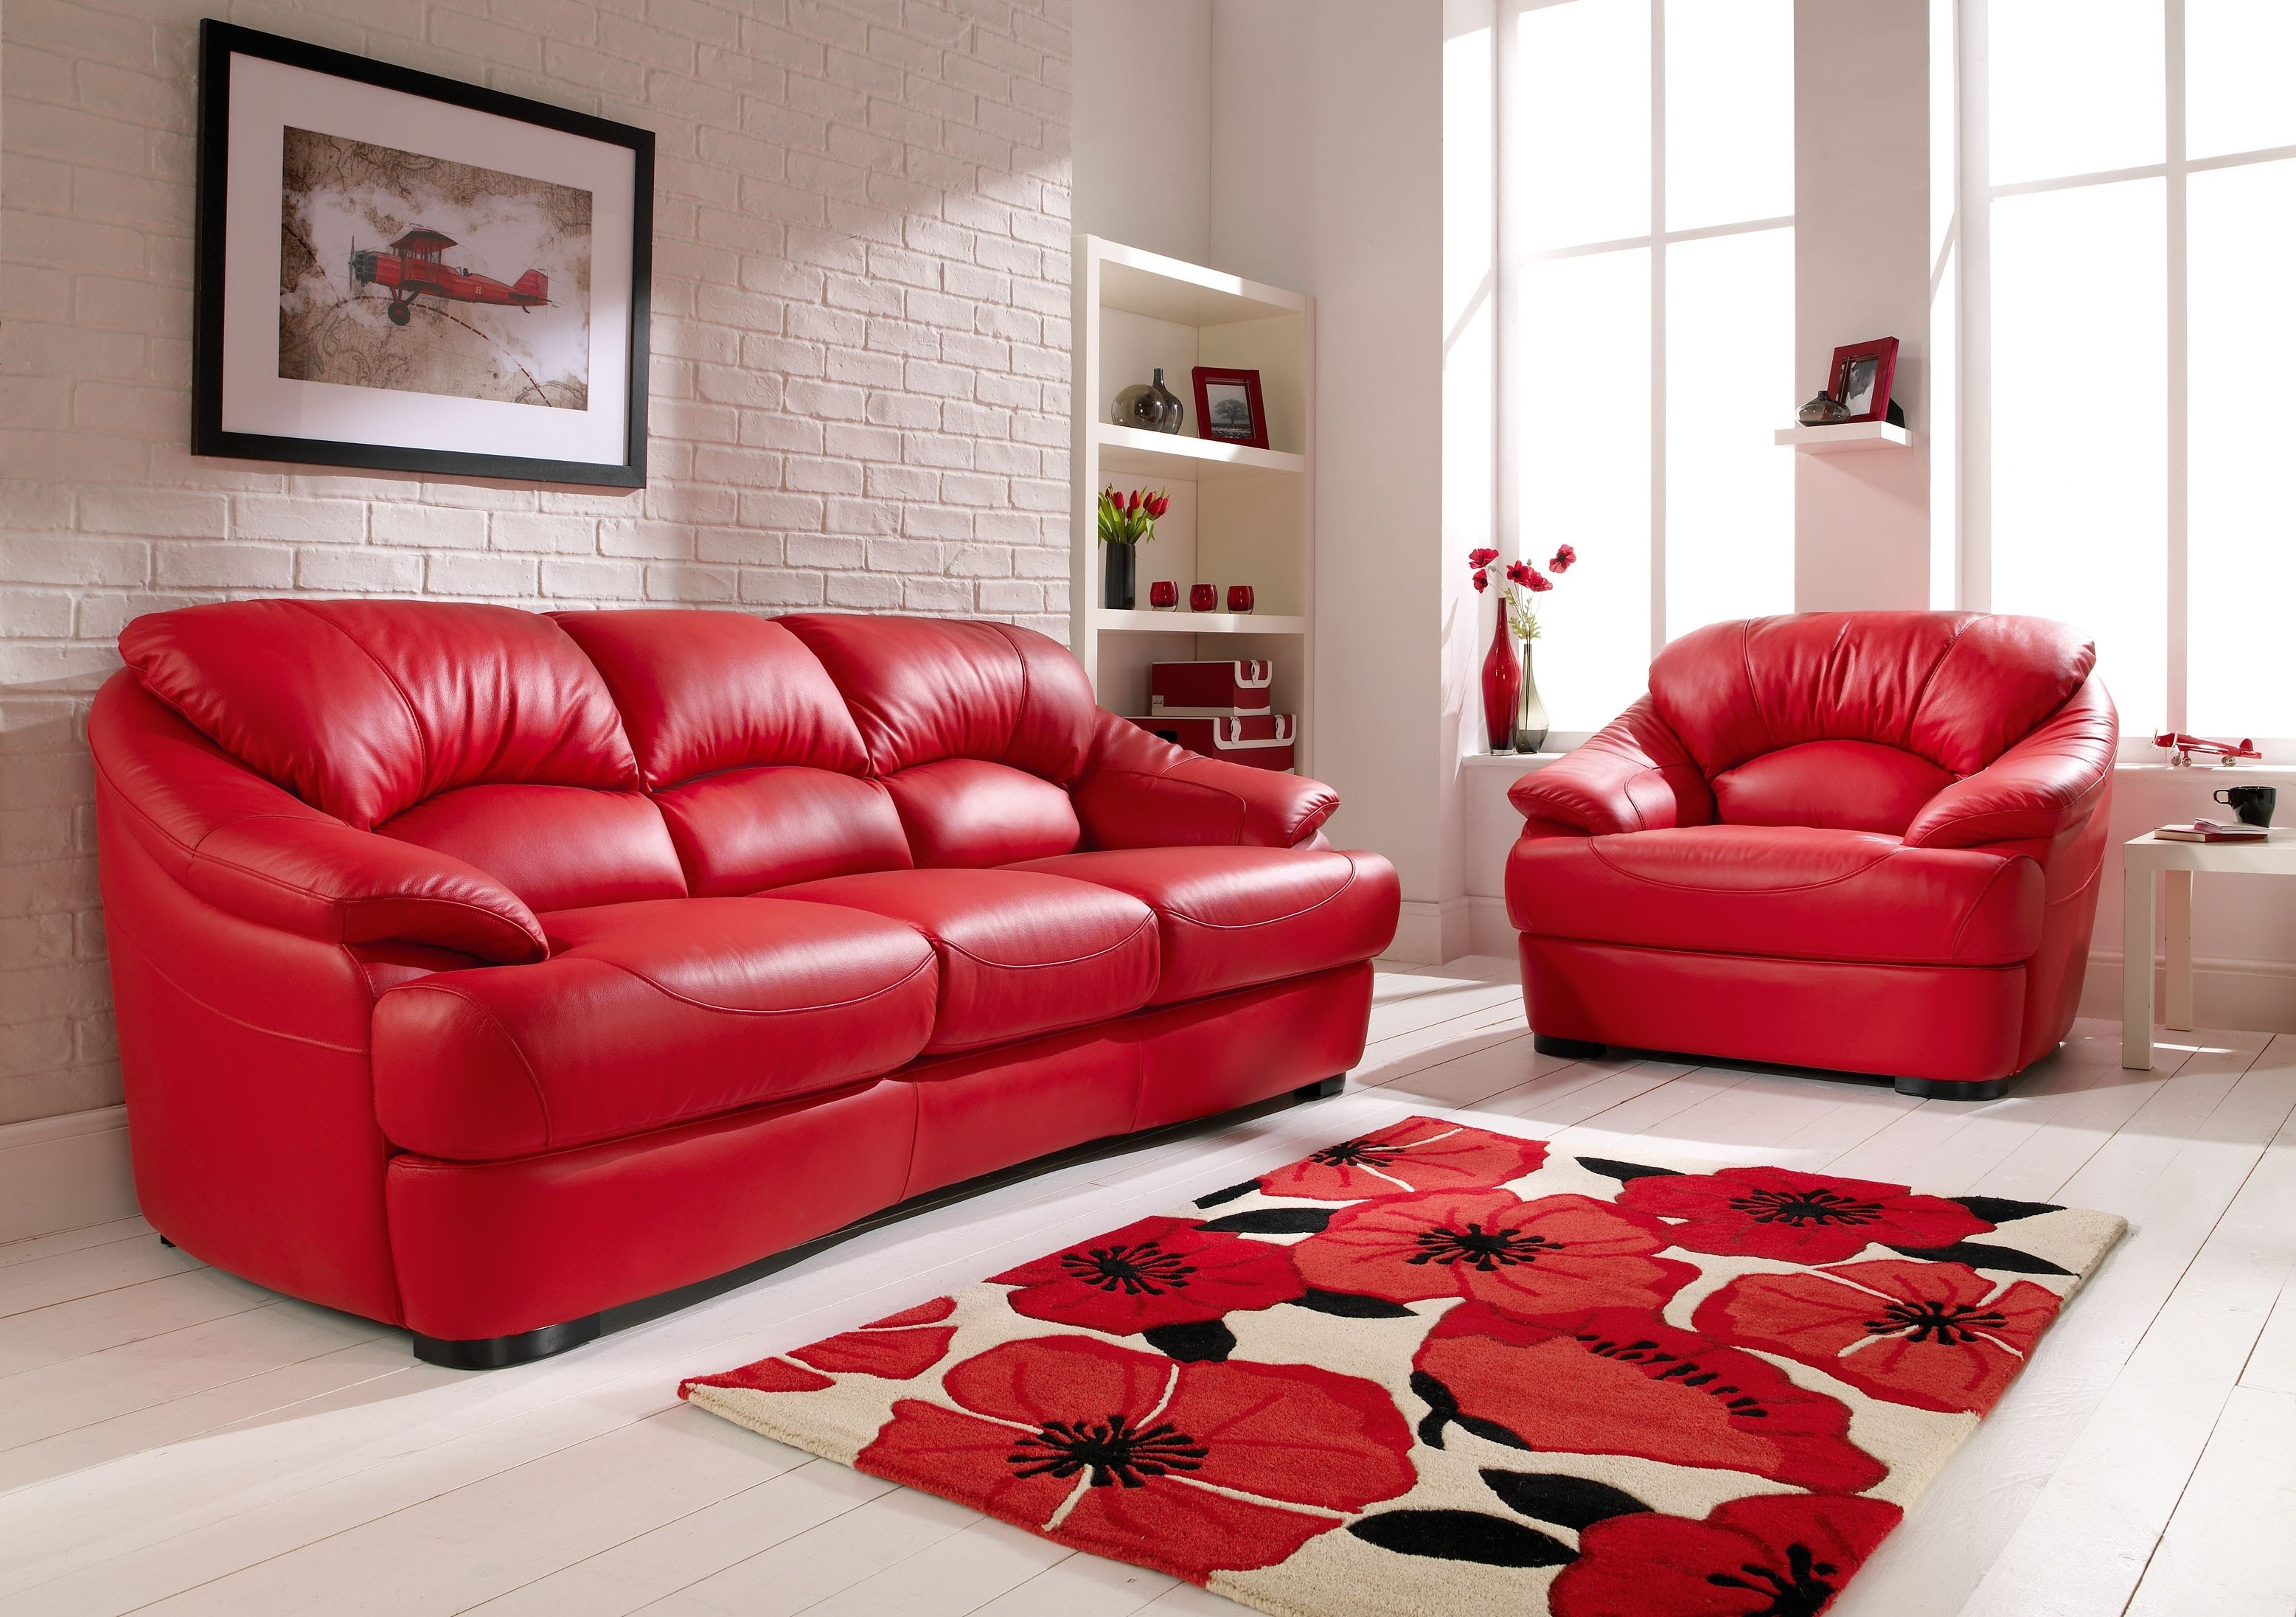 Explore Gallery of Red Leather Couches And Loveseats ...